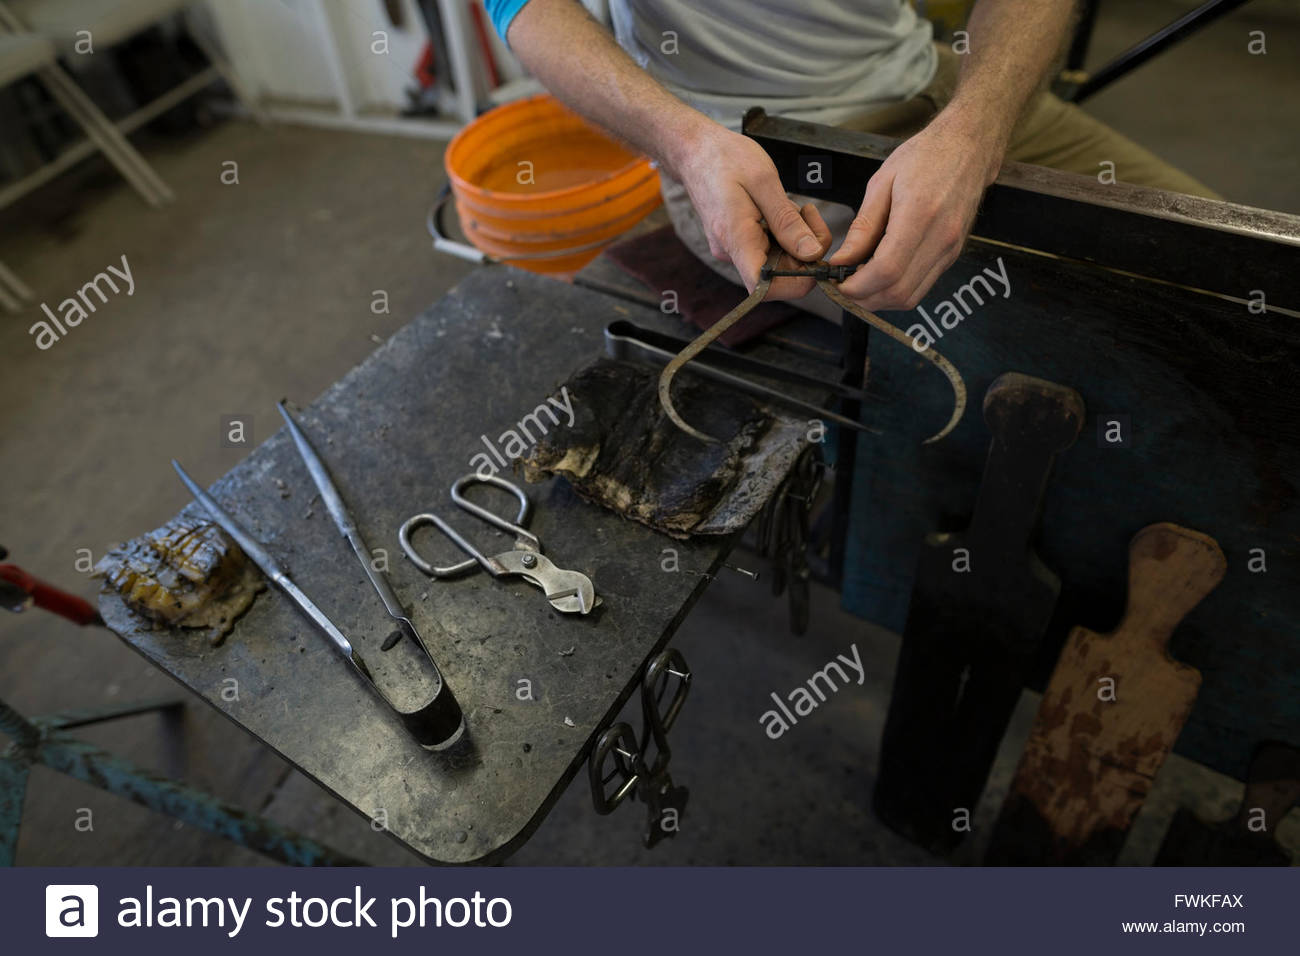 Glass blowing tools - Stock Image